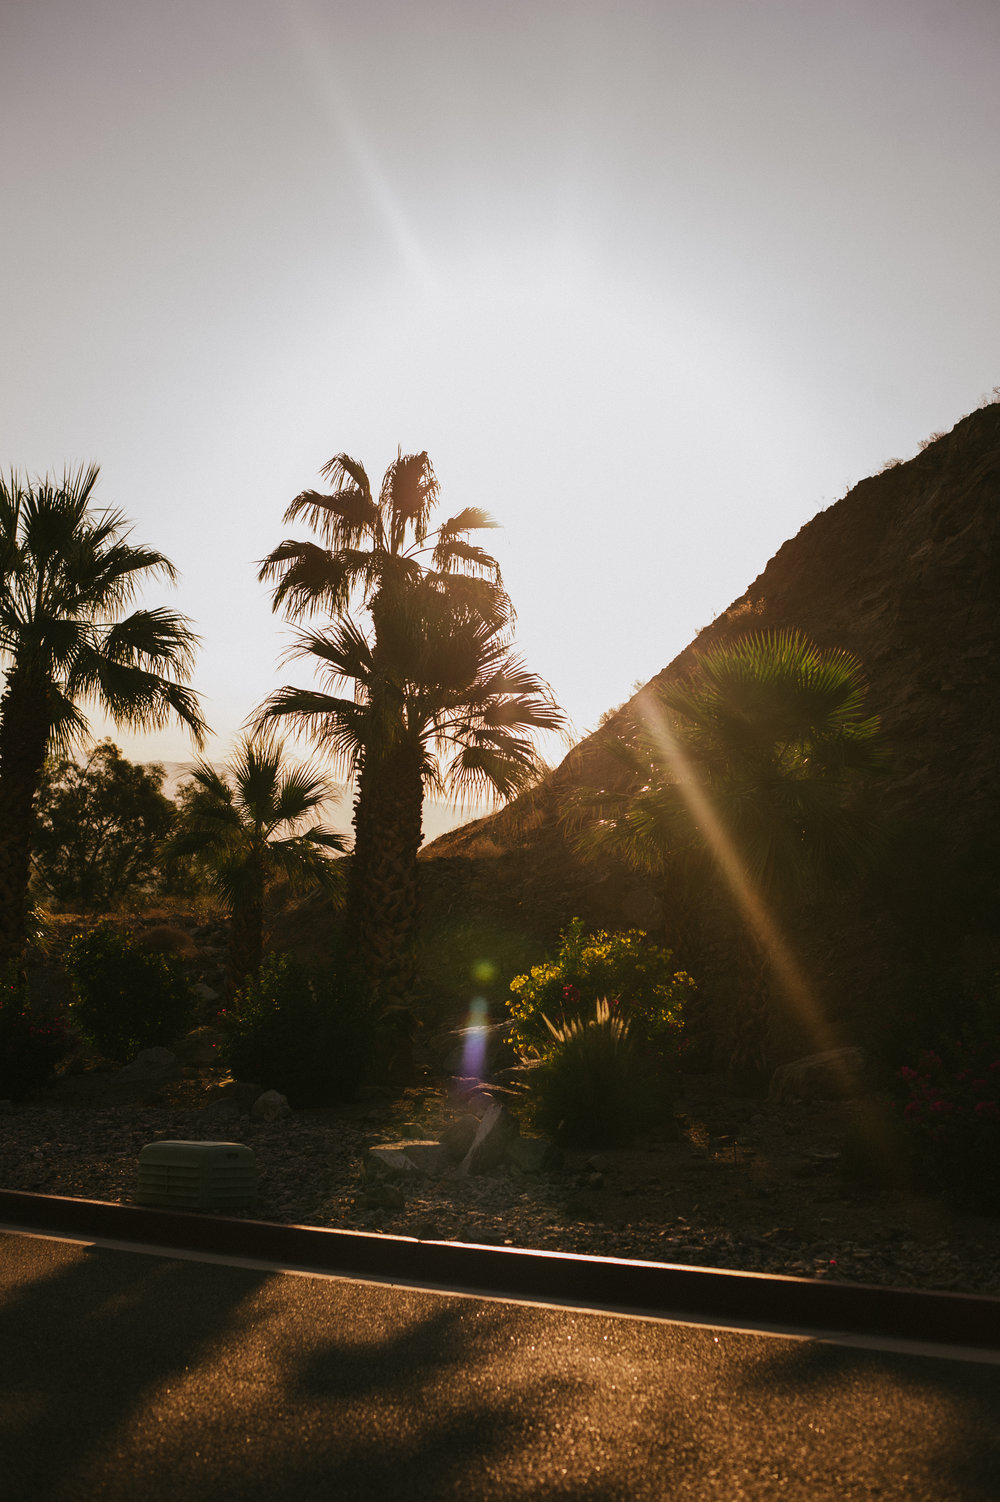 The-Glossier-Palm-Springs-CA-11.jpg